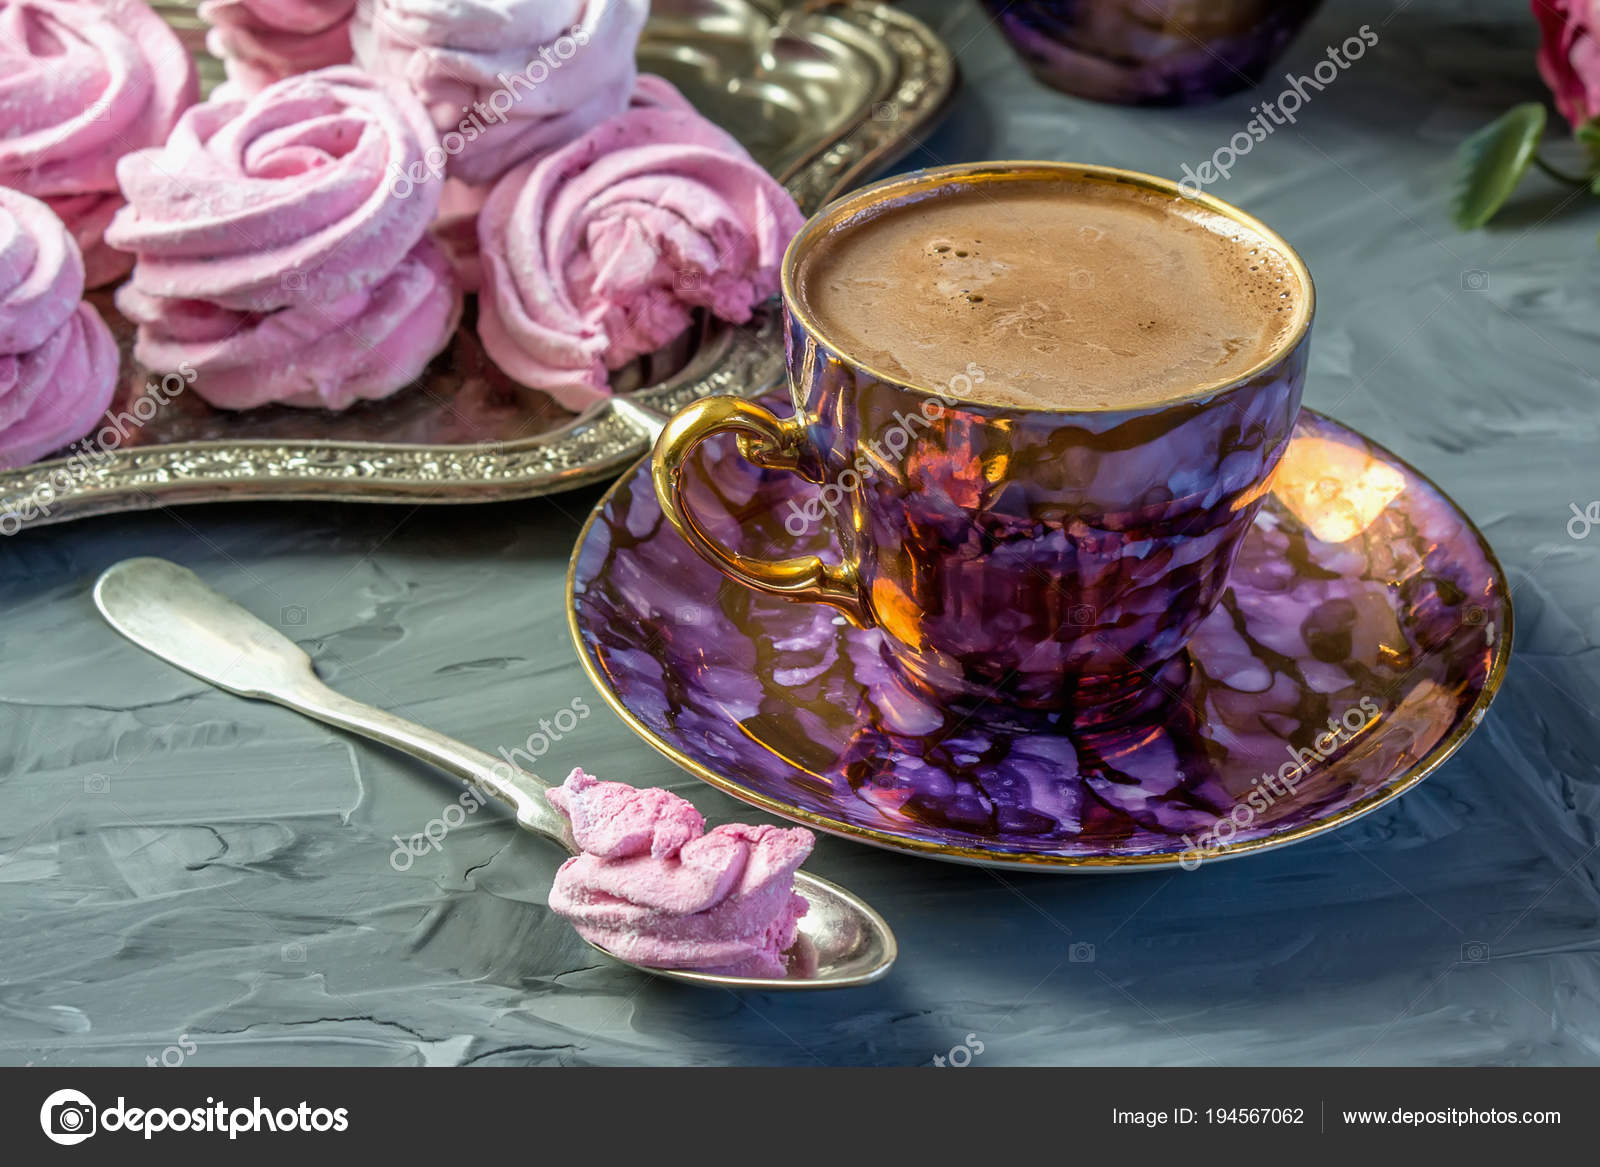 Hot Chocolate In A Beautiful Golden Cup With A Pink Marshmallow Home